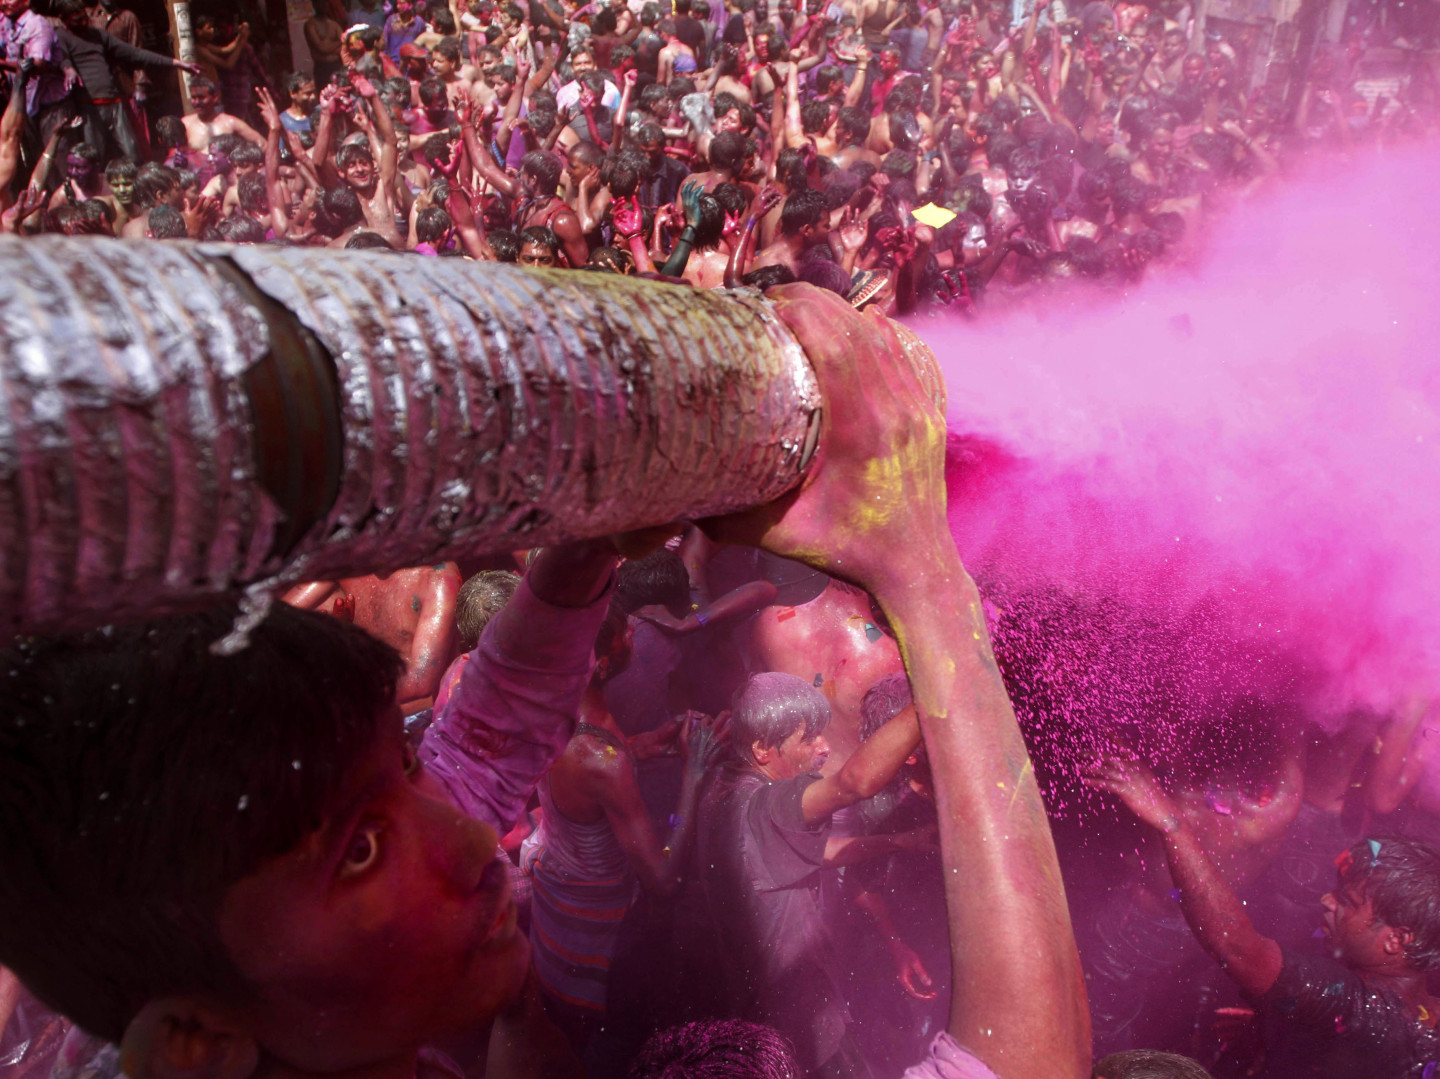 A man sprays colored dye on people dancing during Holi celebrations in India in 2012. Holi, the Hindu festival of colors, also heralds the coming of spring -- a detail that partiers at the Shout Color Throw might miss.